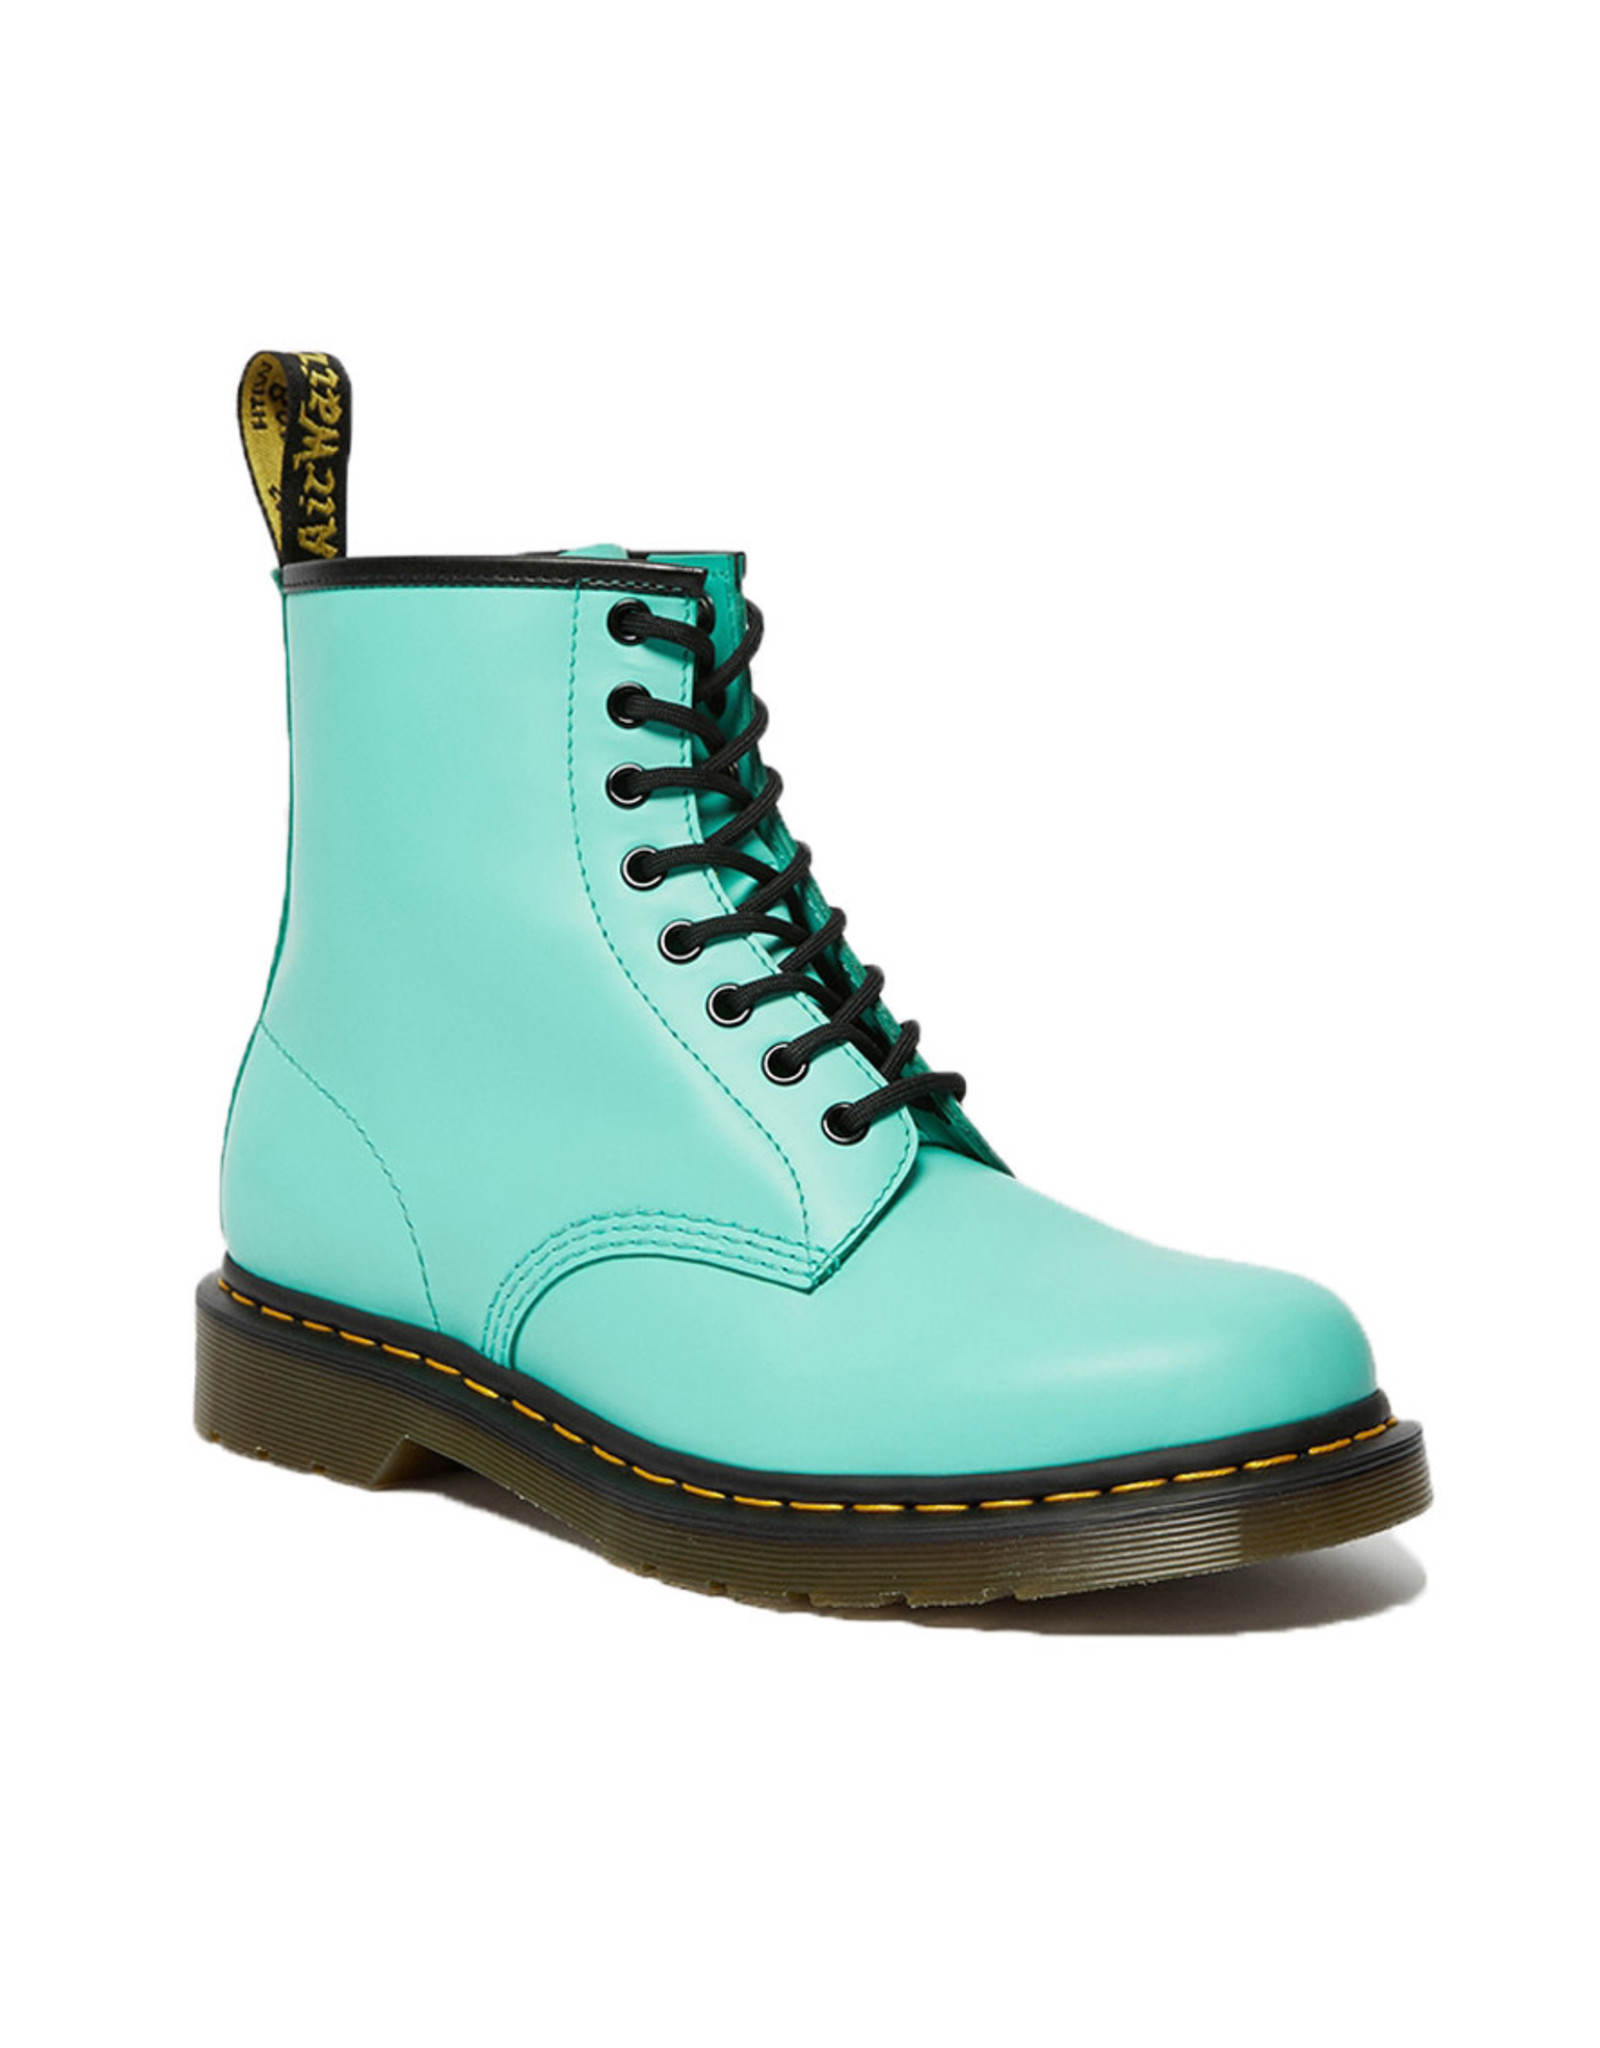 DR. MARTENS 1460 PEPPERMINT GREEN SMOOTH 815PMG-R26069983